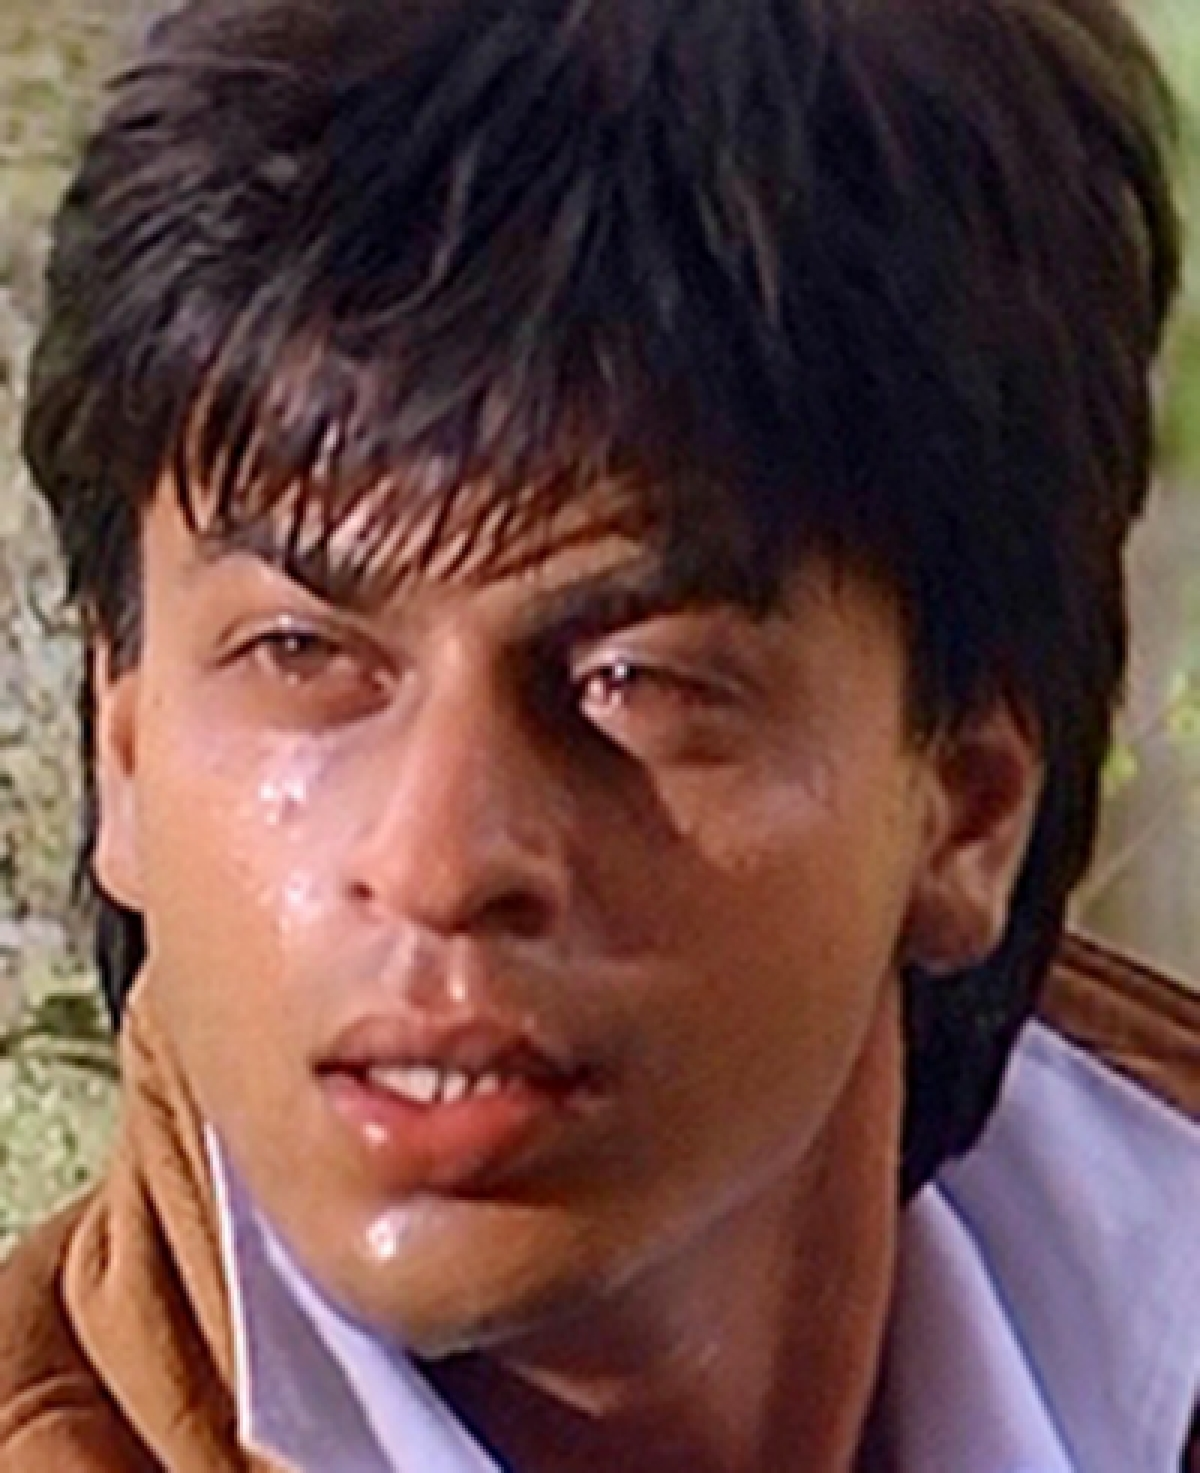 Woman exec's abductor inspired by SRK!